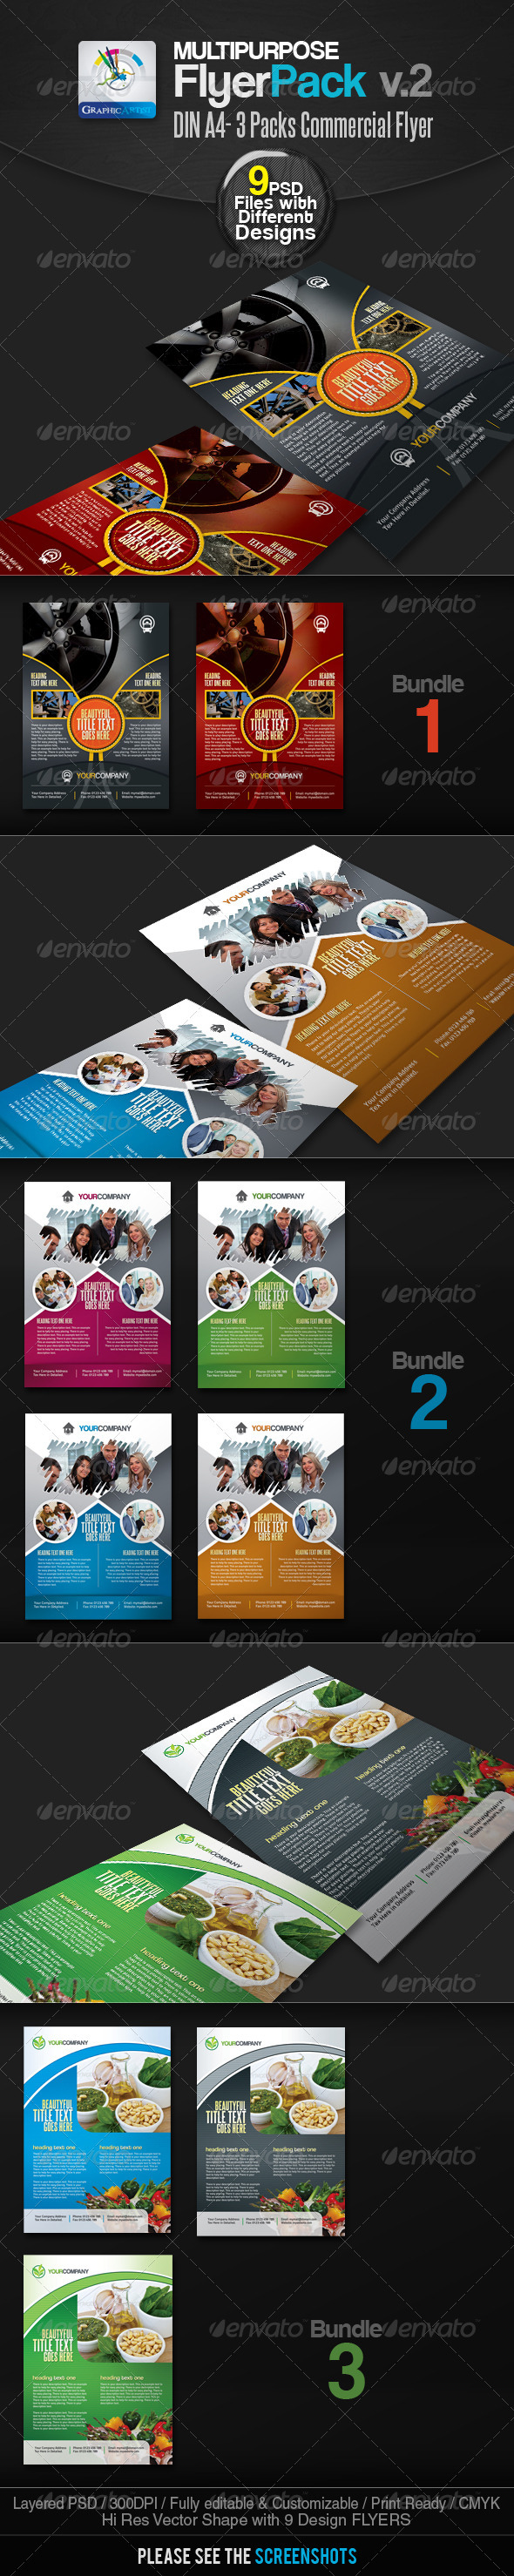 Multipurpose Commercial Flyer Bundle v.2 - Commerce Flyers